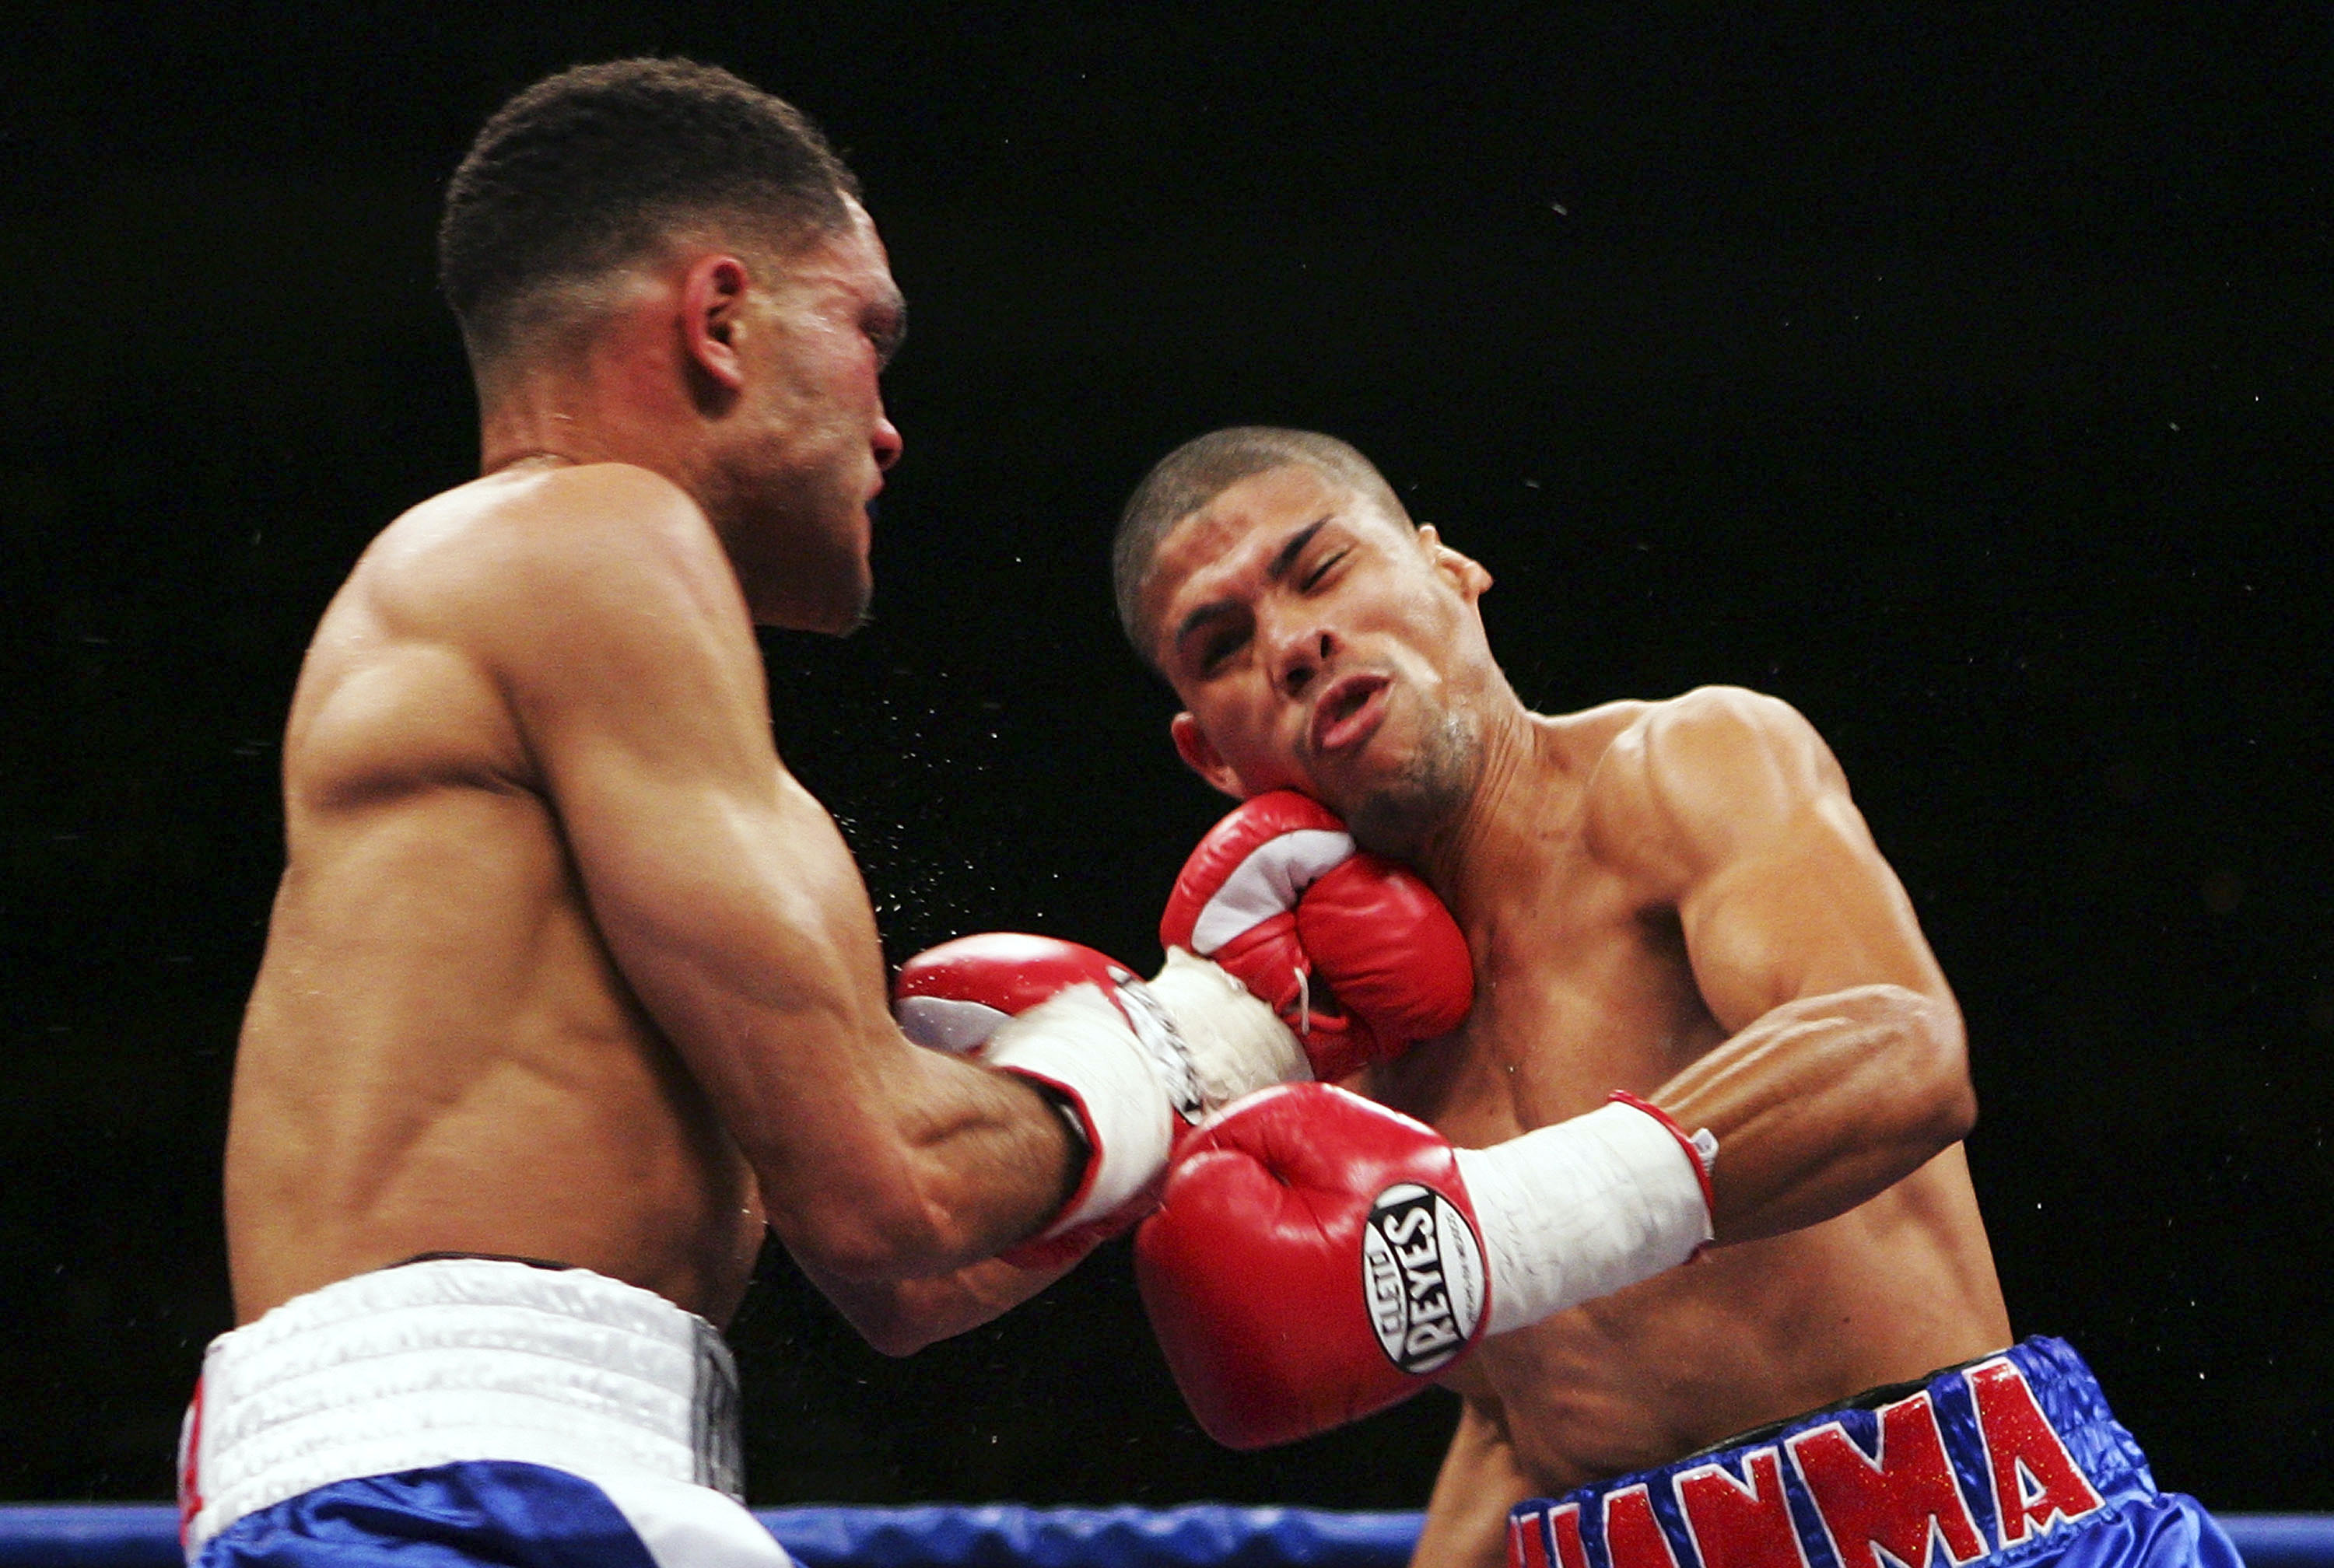 SAN JUAN, PUERTO RICO - MARCH 03:  Juan Manuel Lopez (R) receives a punch from Juan Brea during their fight on March 3, 2007 at the Roberto Clemente Coliseo in San Juan, Puerto Rico.  (Photo by Al Bello/Getty Images)